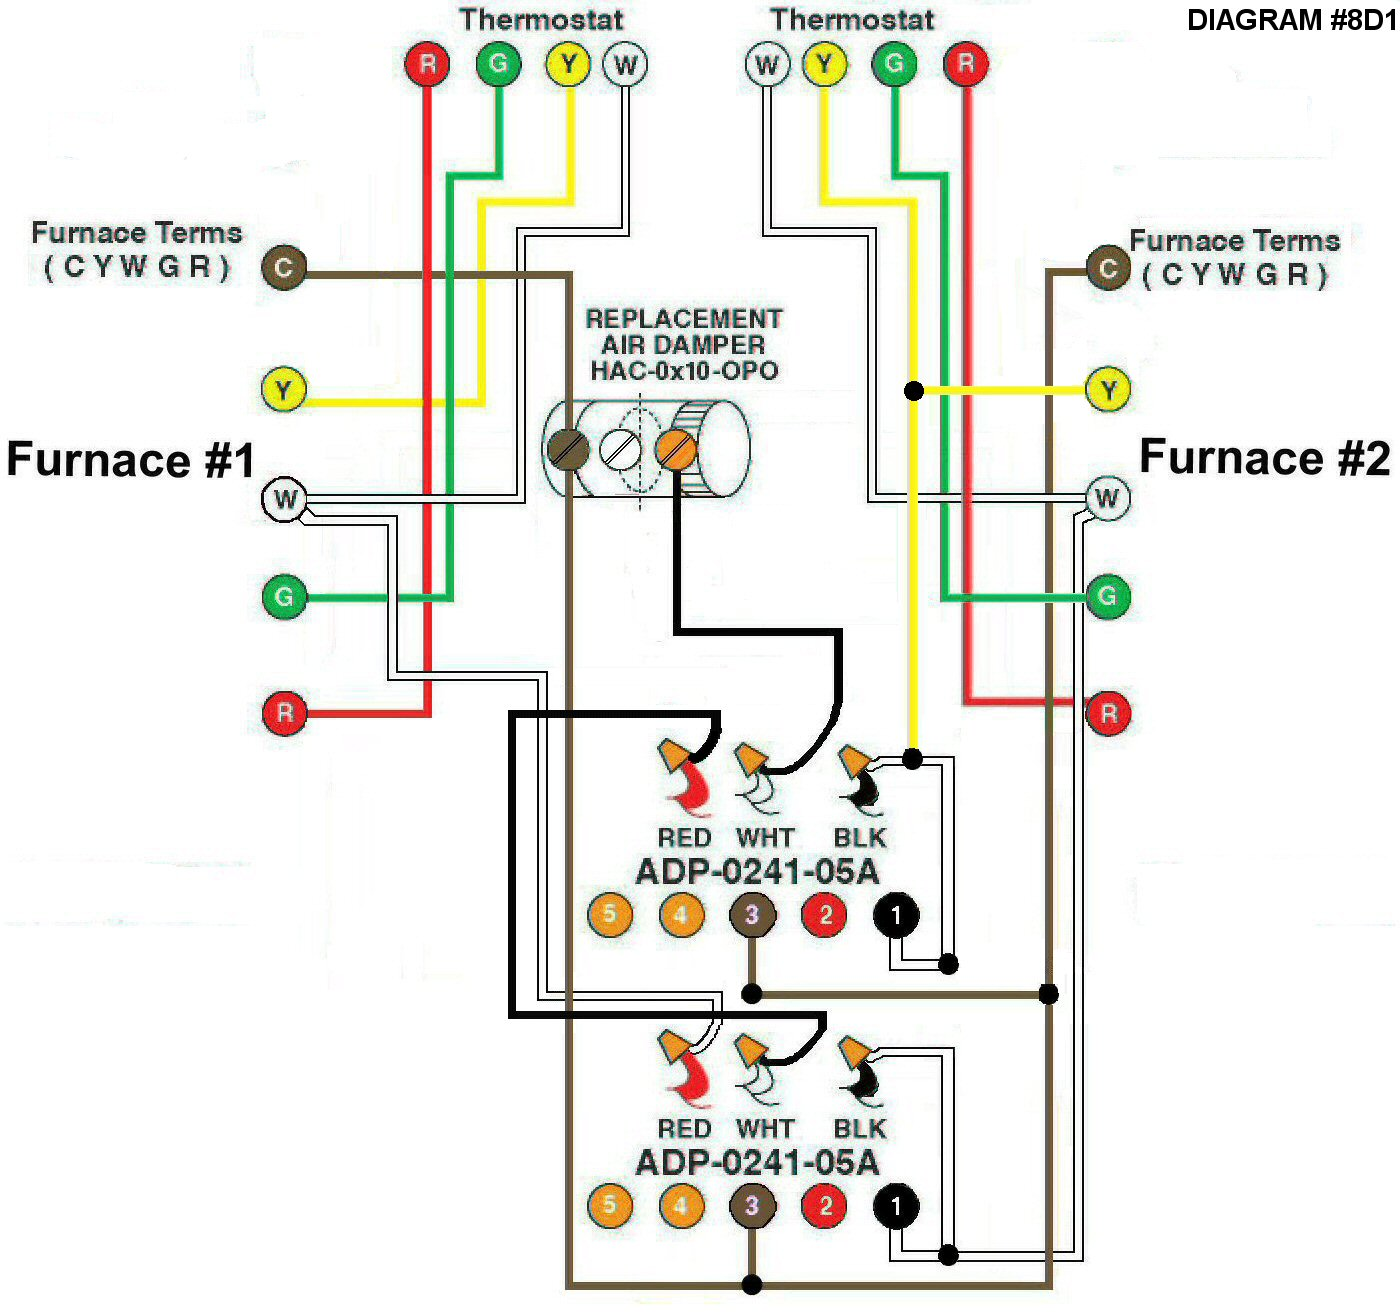 Hvac Thermostat Wiring Diagrams : Wire thermostat wiring diagram get free image about